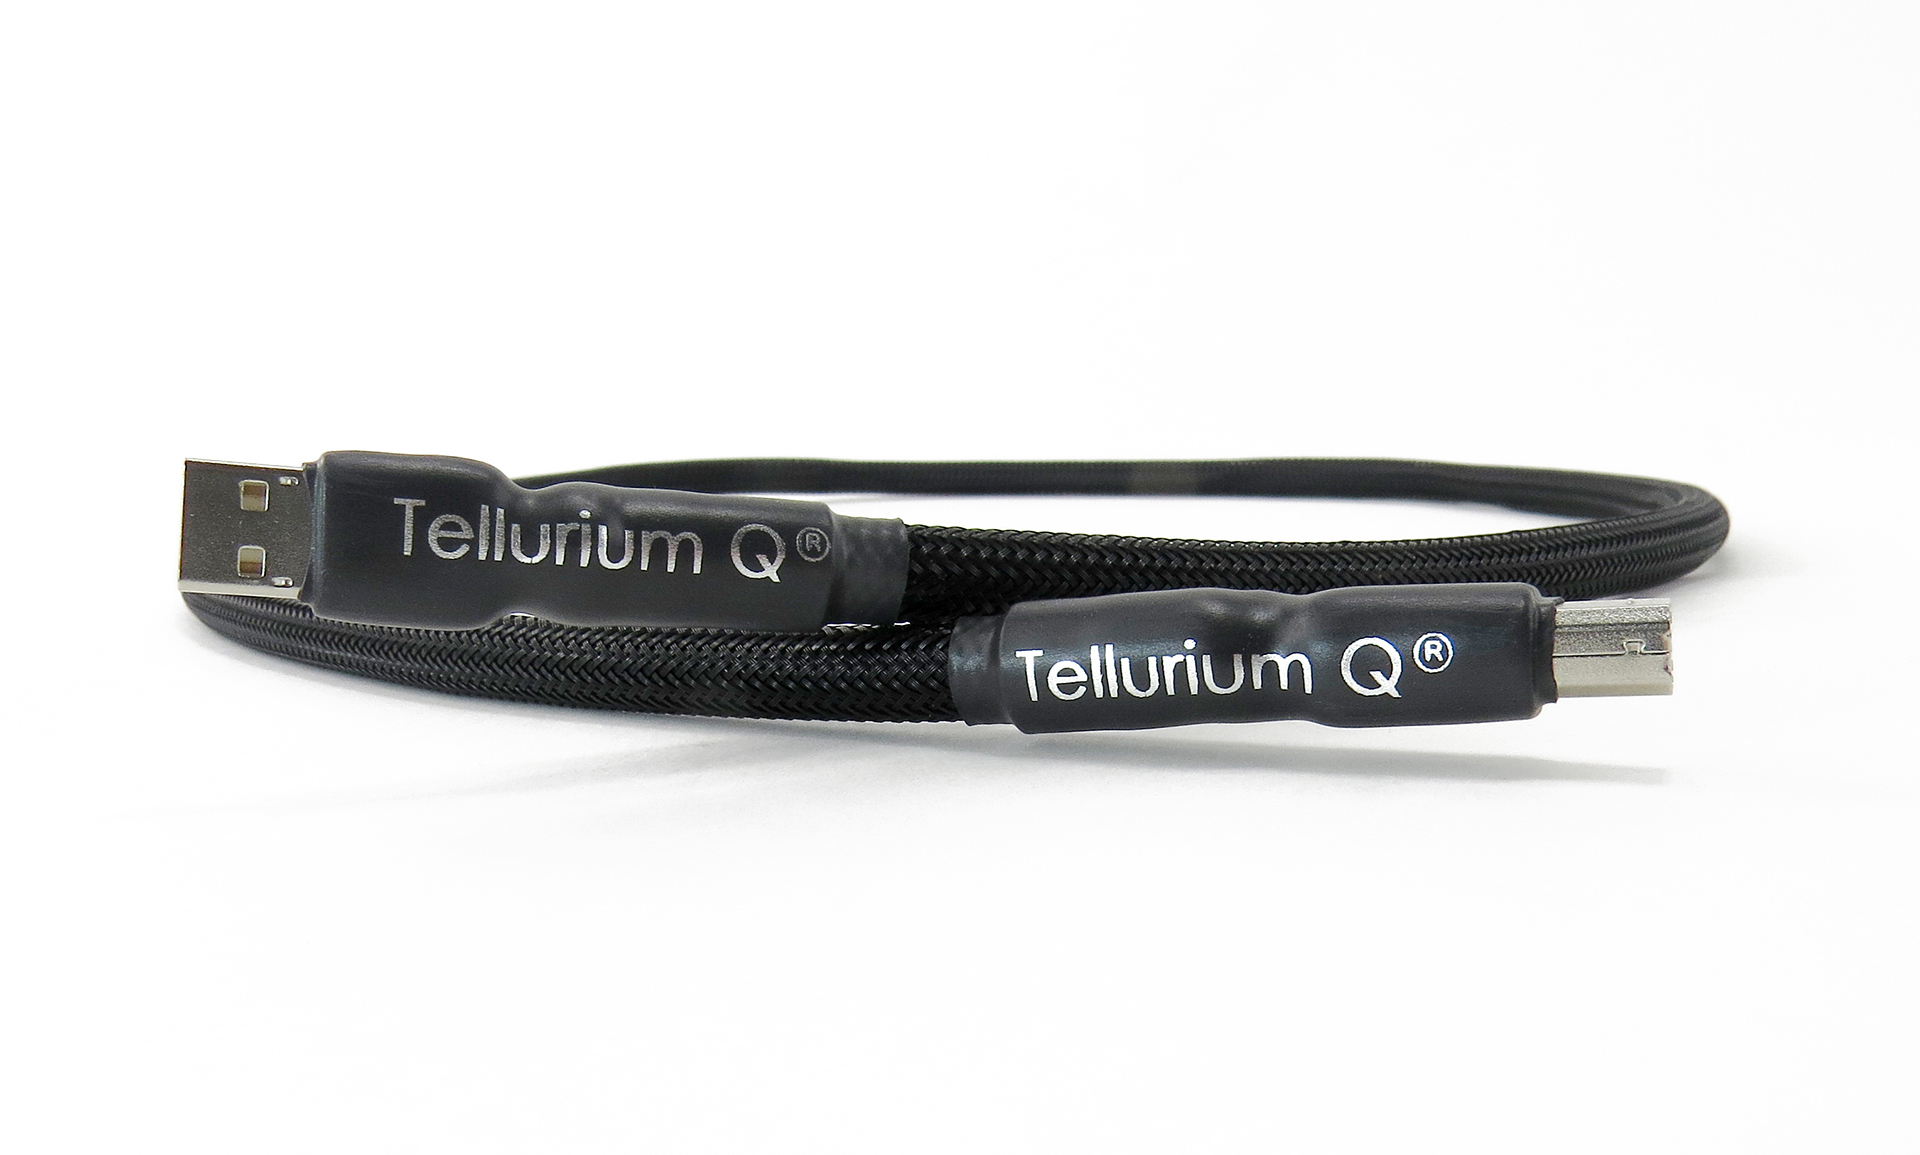 Tellurium Q | Black | USB Kabel